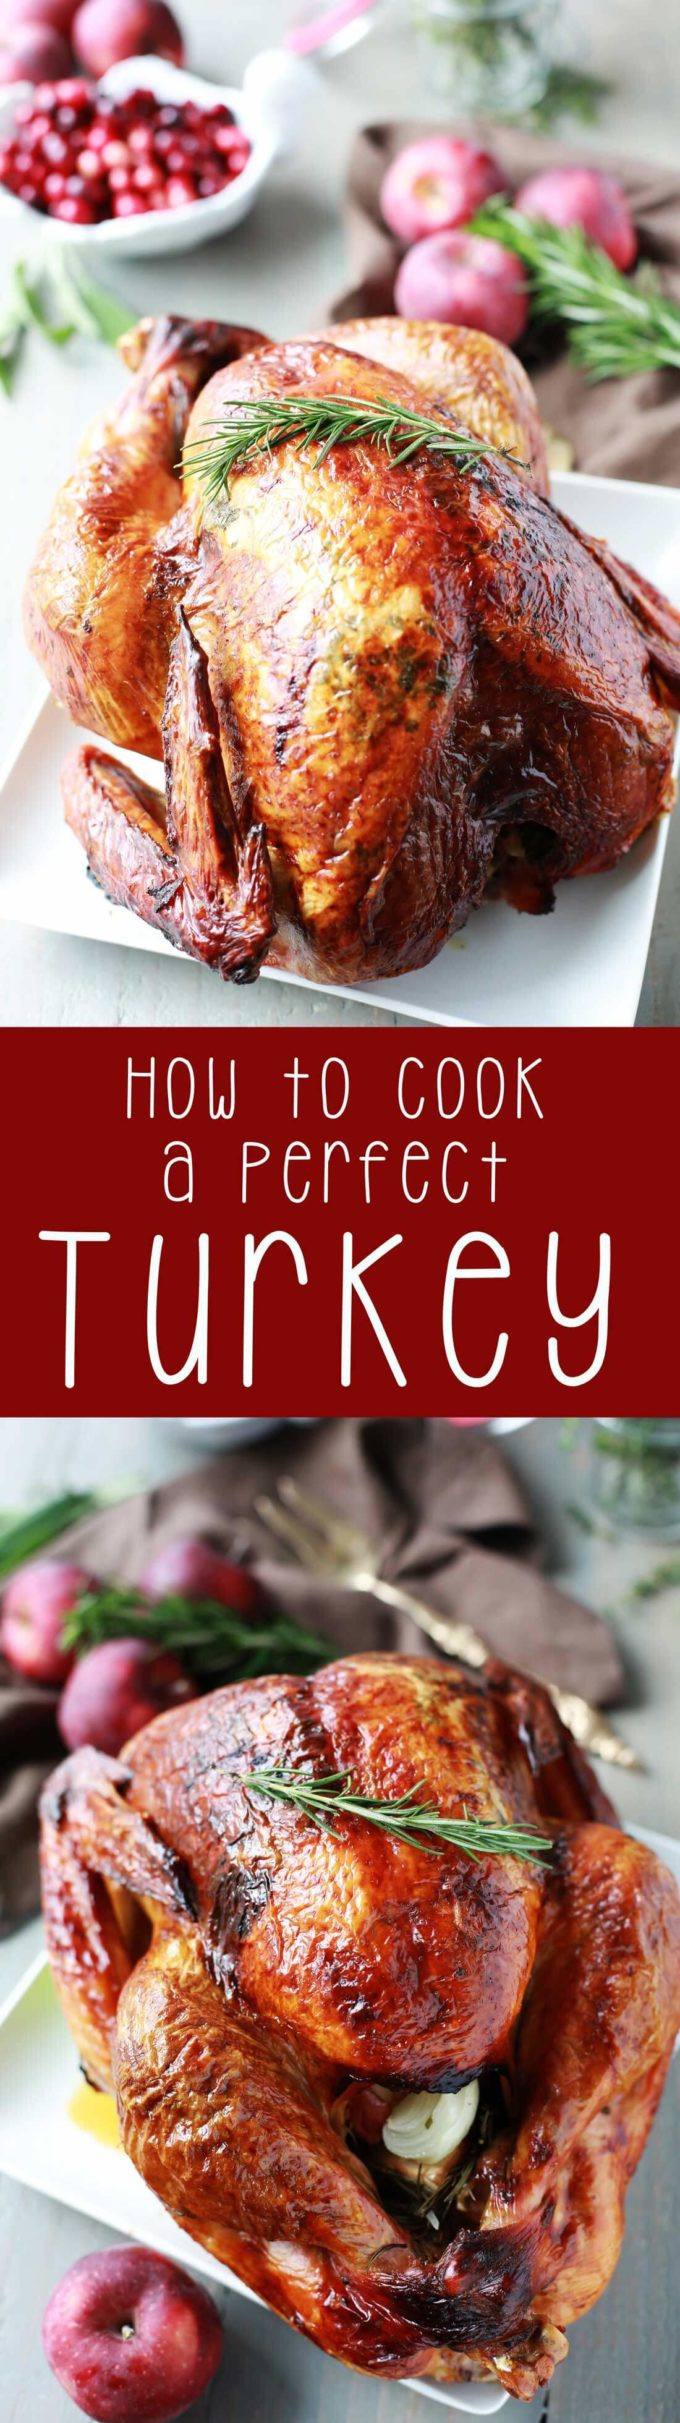 How To Cook Thanksgiving Turkey  How to Cook a Perfect Turkey Eazy Peazy Mealz